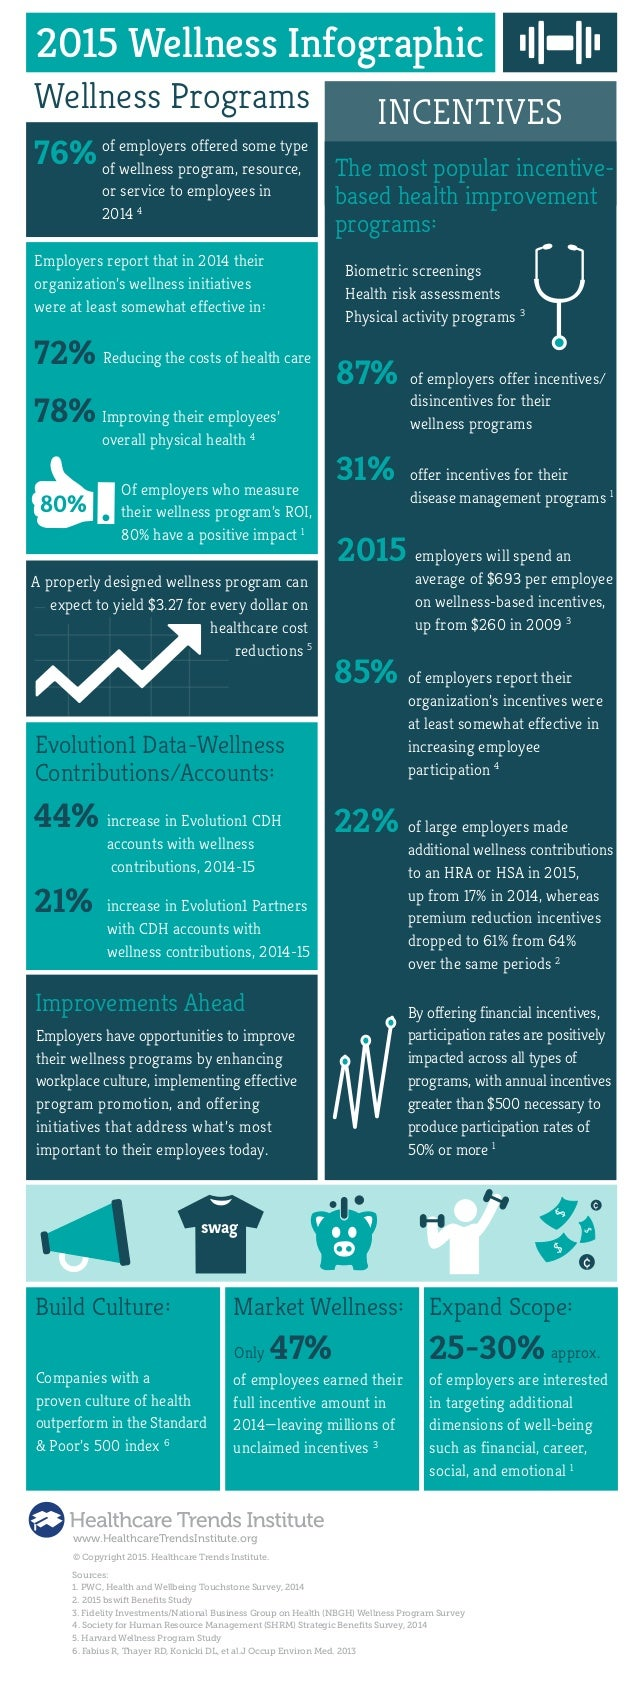 2015 Wellness Infographic 76% Wellness Programs of employers offered some type of wellness program, resource, or service t...